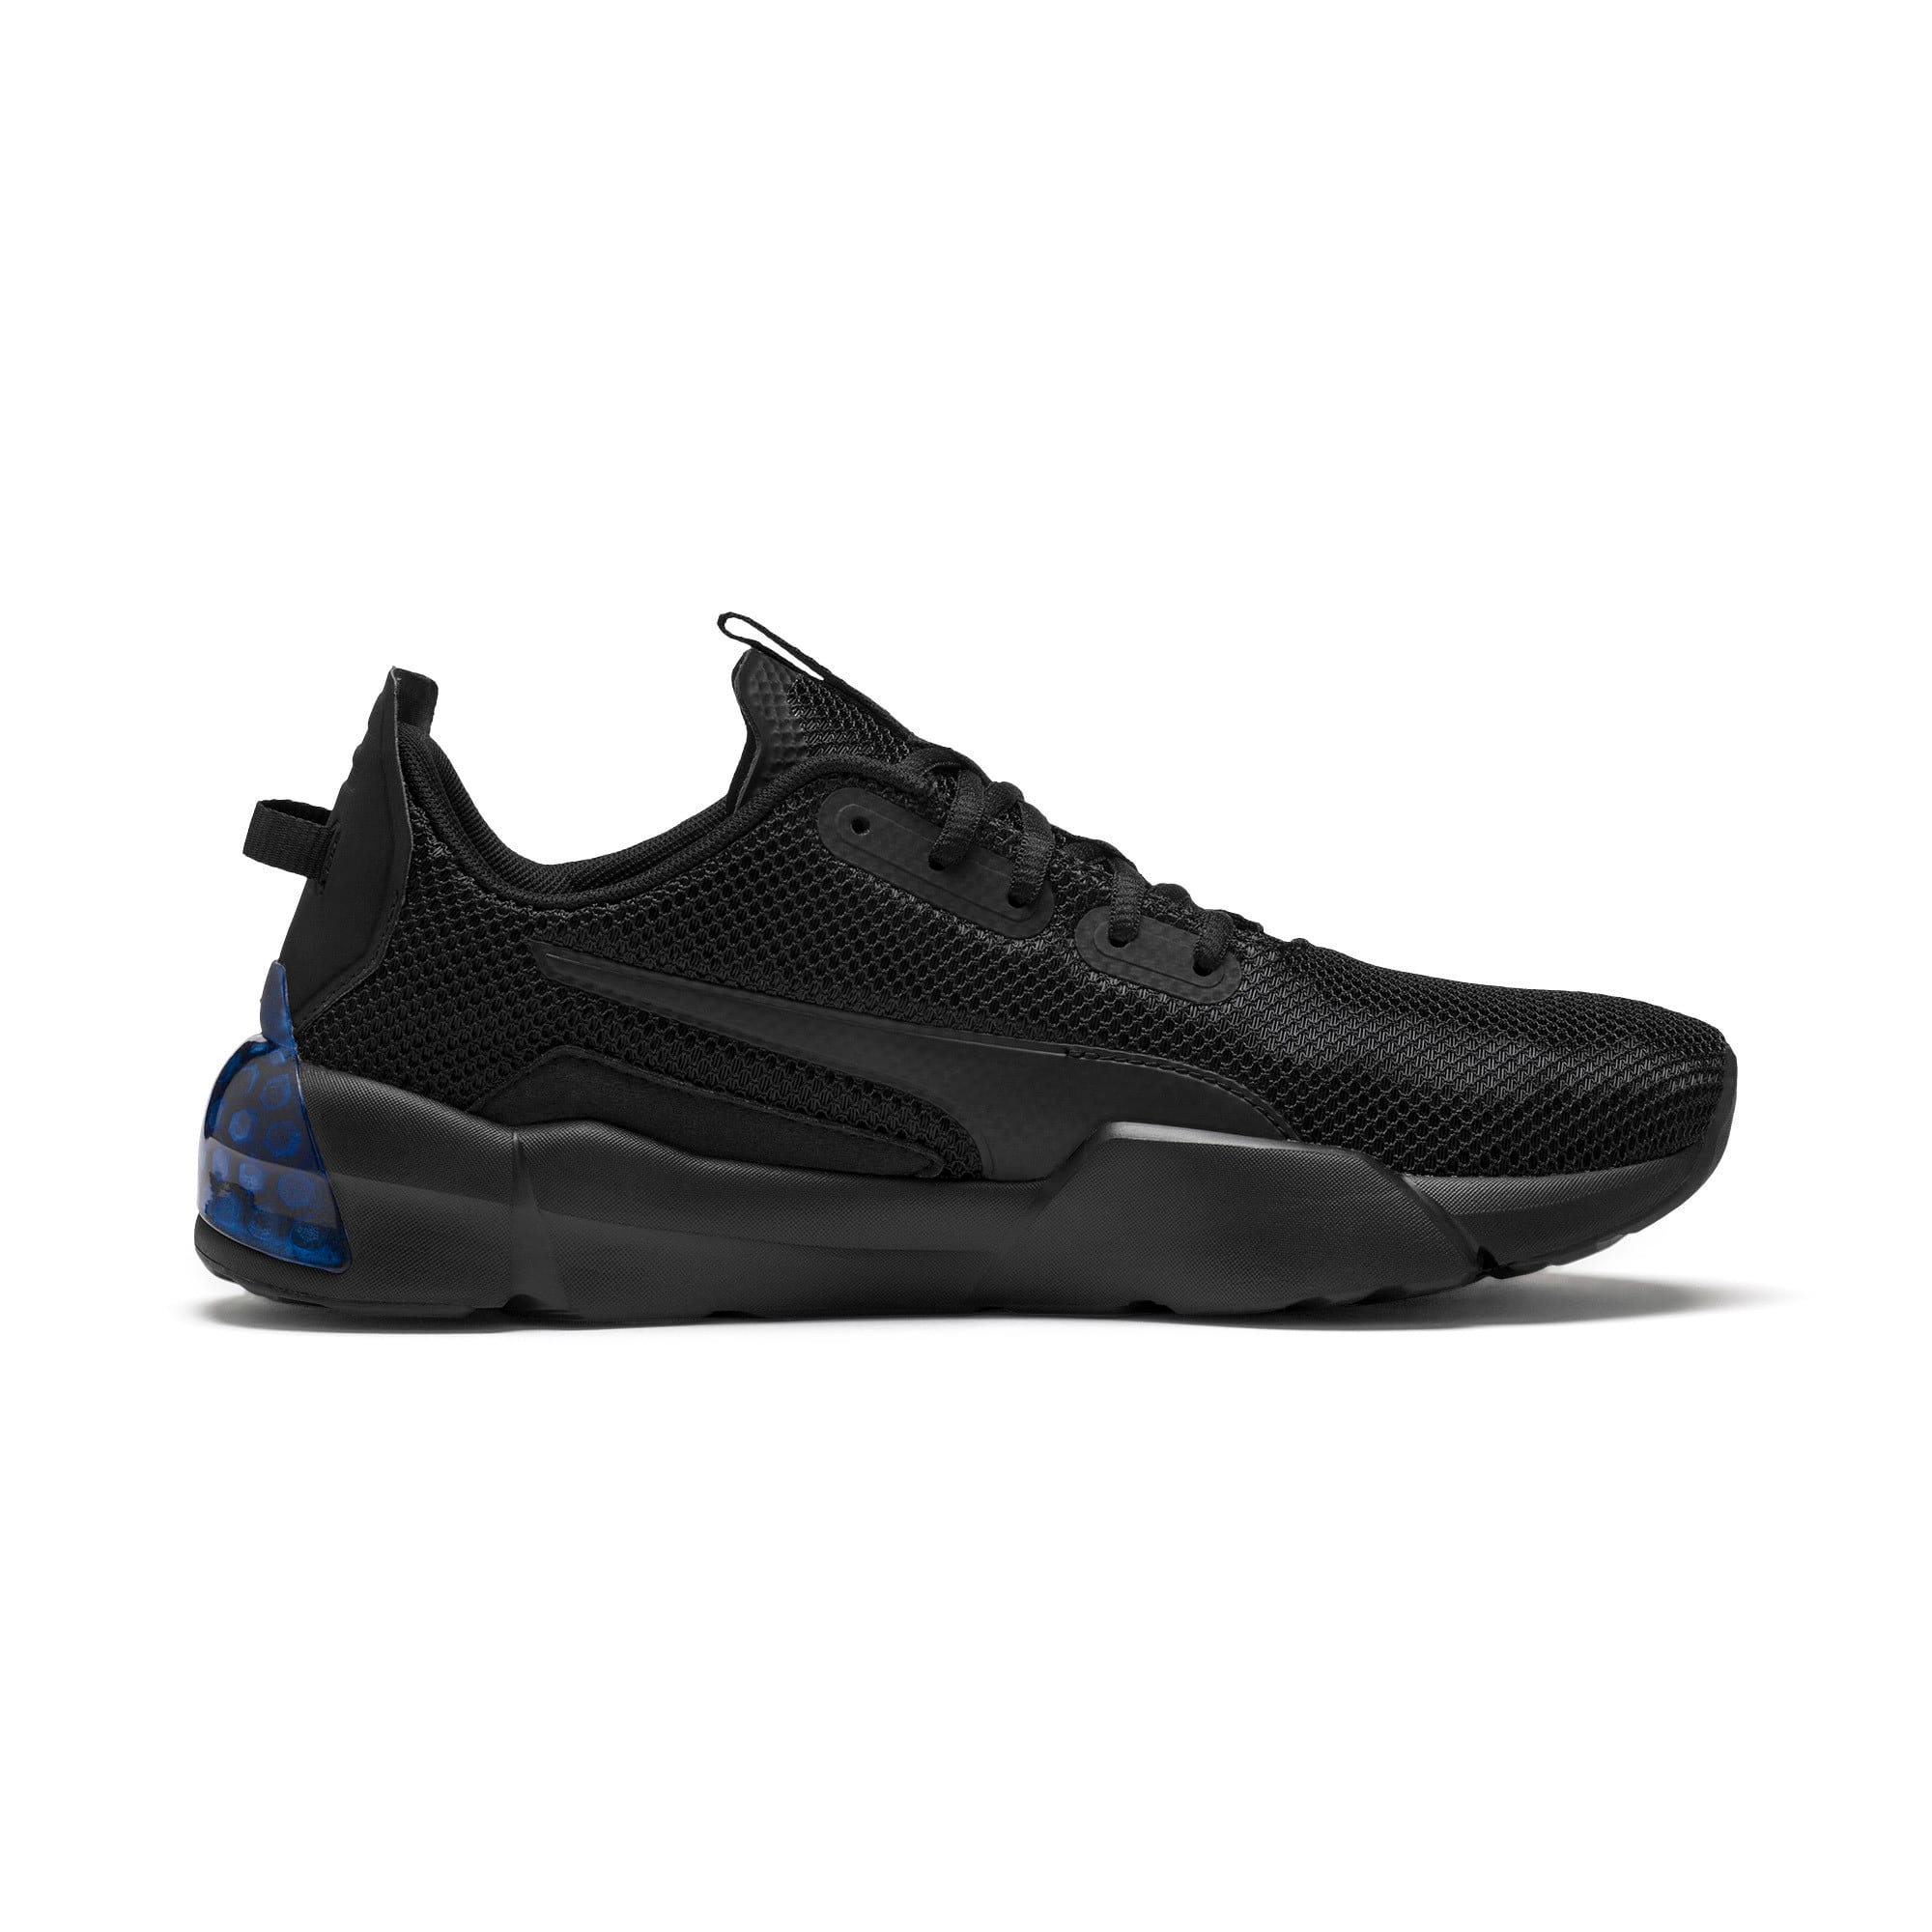 Thumbnail 6 of CELL Phase Men's Running Trainers, Puma Black-Galaxy Blue, medium